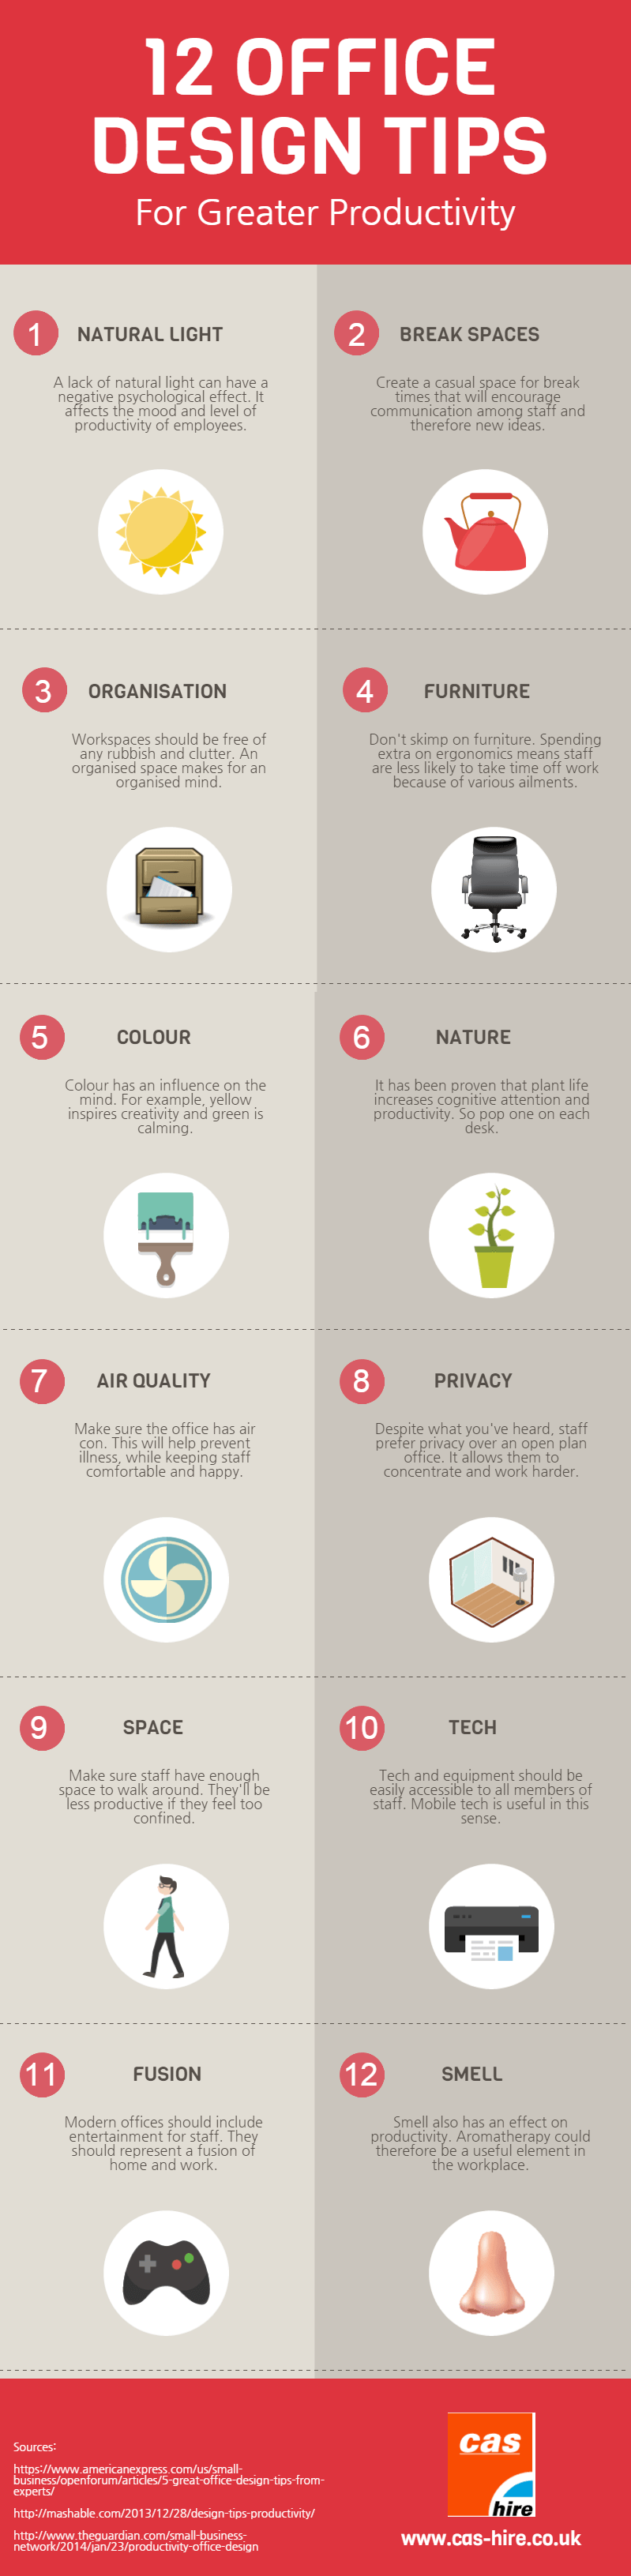 12 office design tips for greater productivity infographic for Office design productivity research